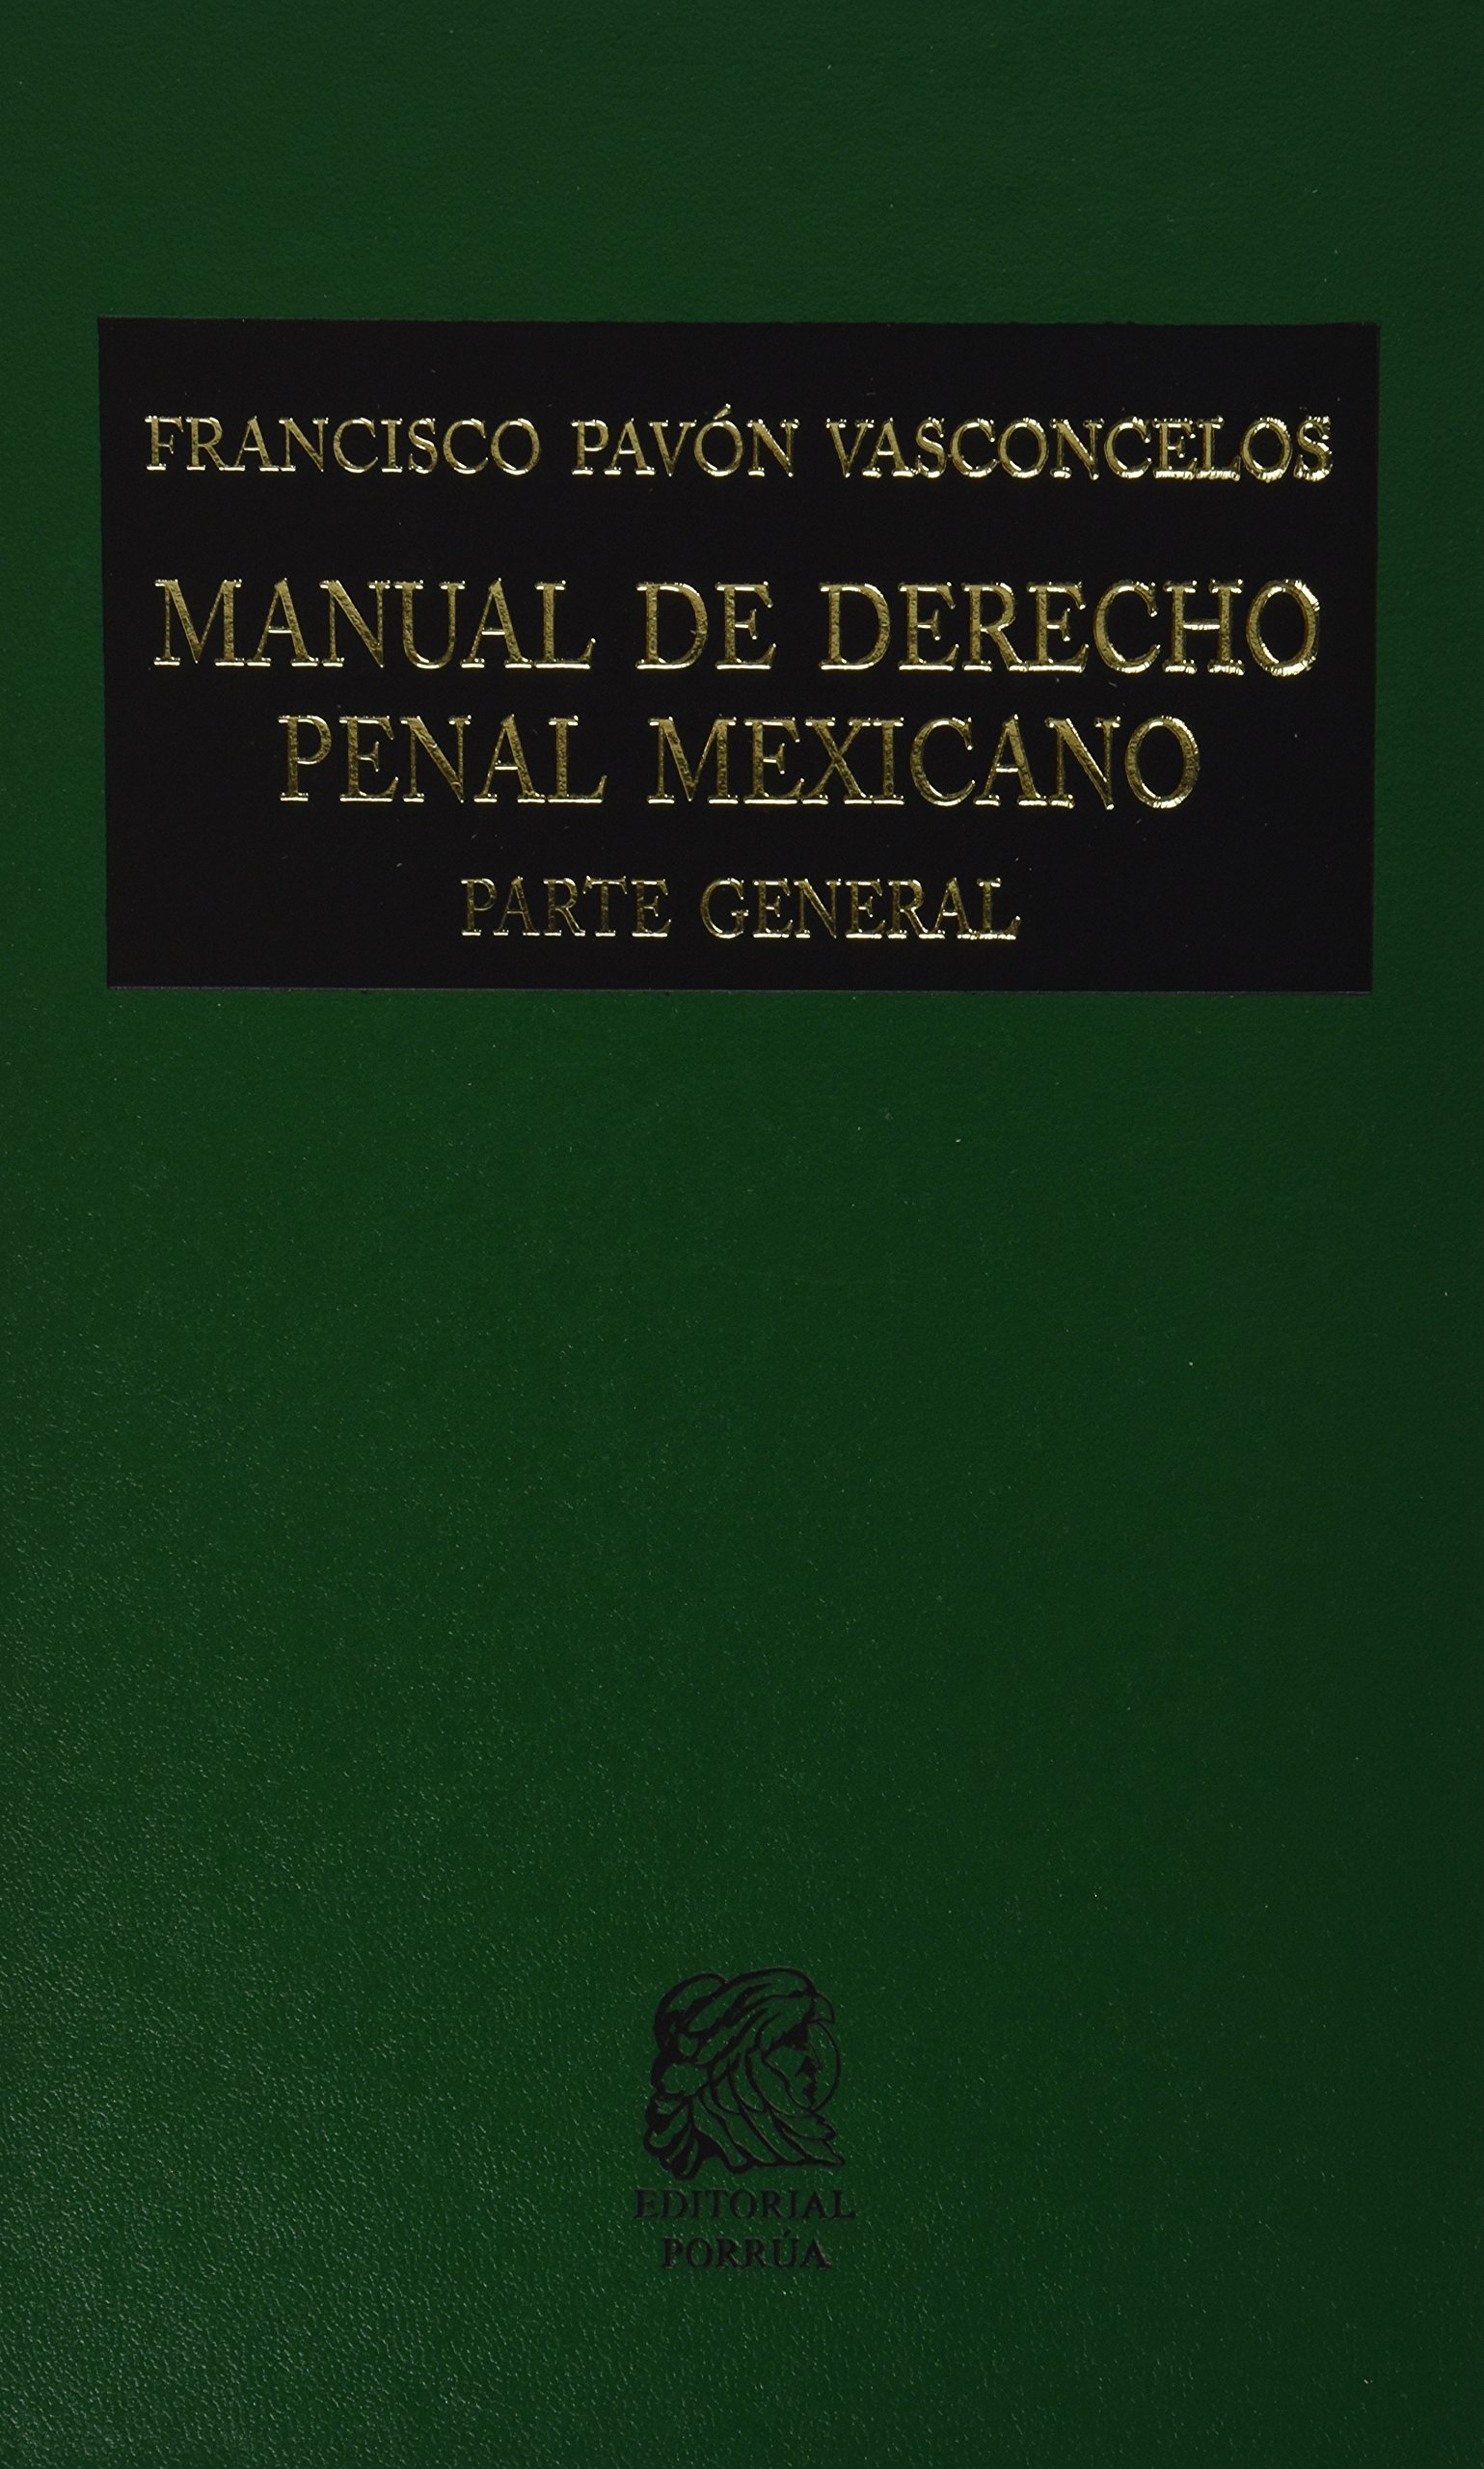 manual de derecho penal mexicano francisco pavon vasconcelos